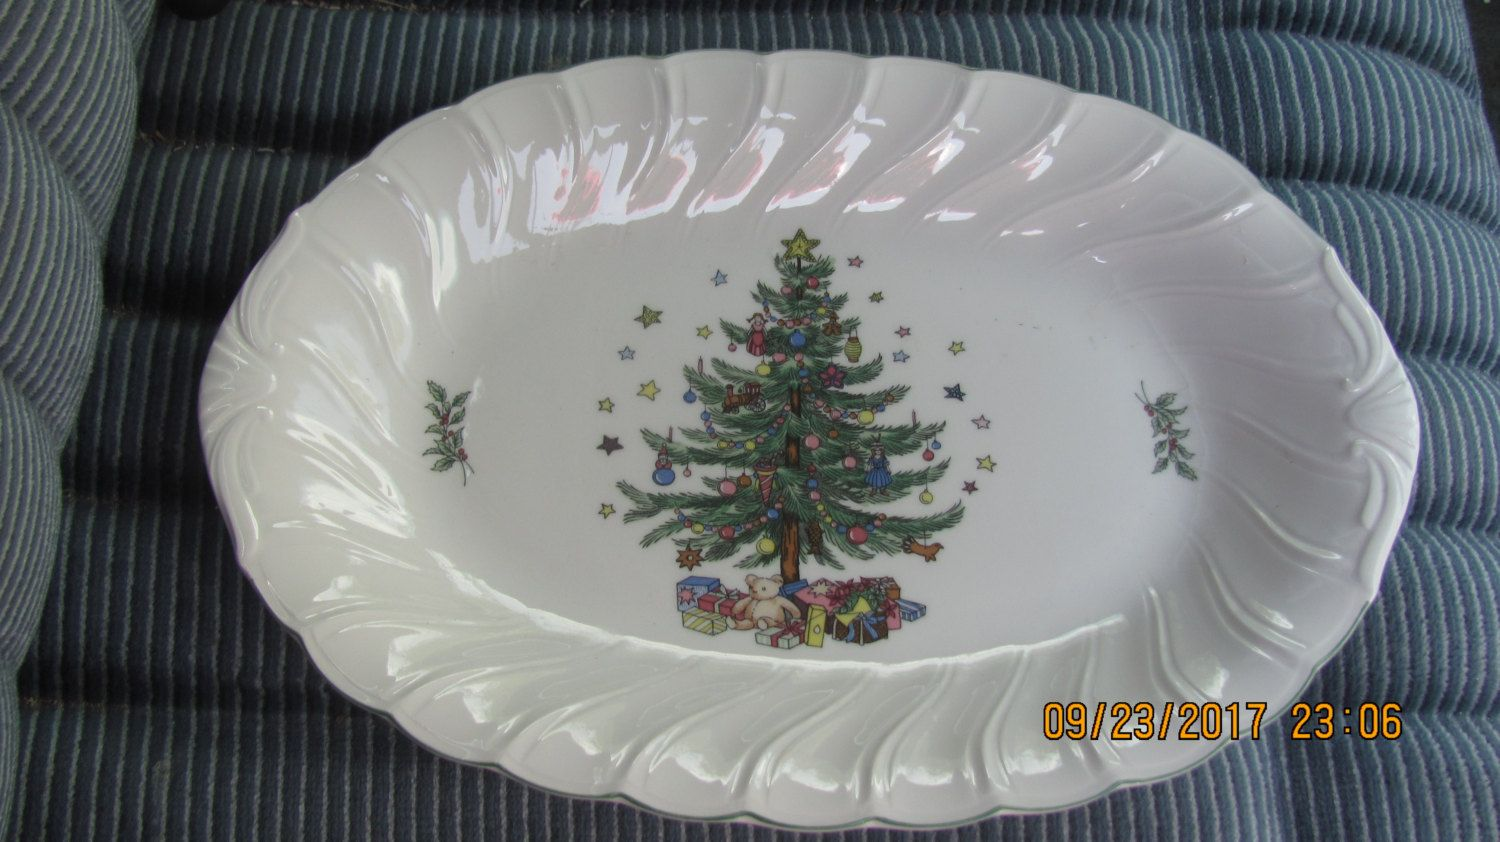 Vtg 1980u0027s Nikko Happy Holidays Christmas Tree Presents 14  Porcelain Scalloped Vegetable Platter Serving Dish & Vtg 1980u0027s Nikko Happy Holidays Christmas Tree Presents 14 ...